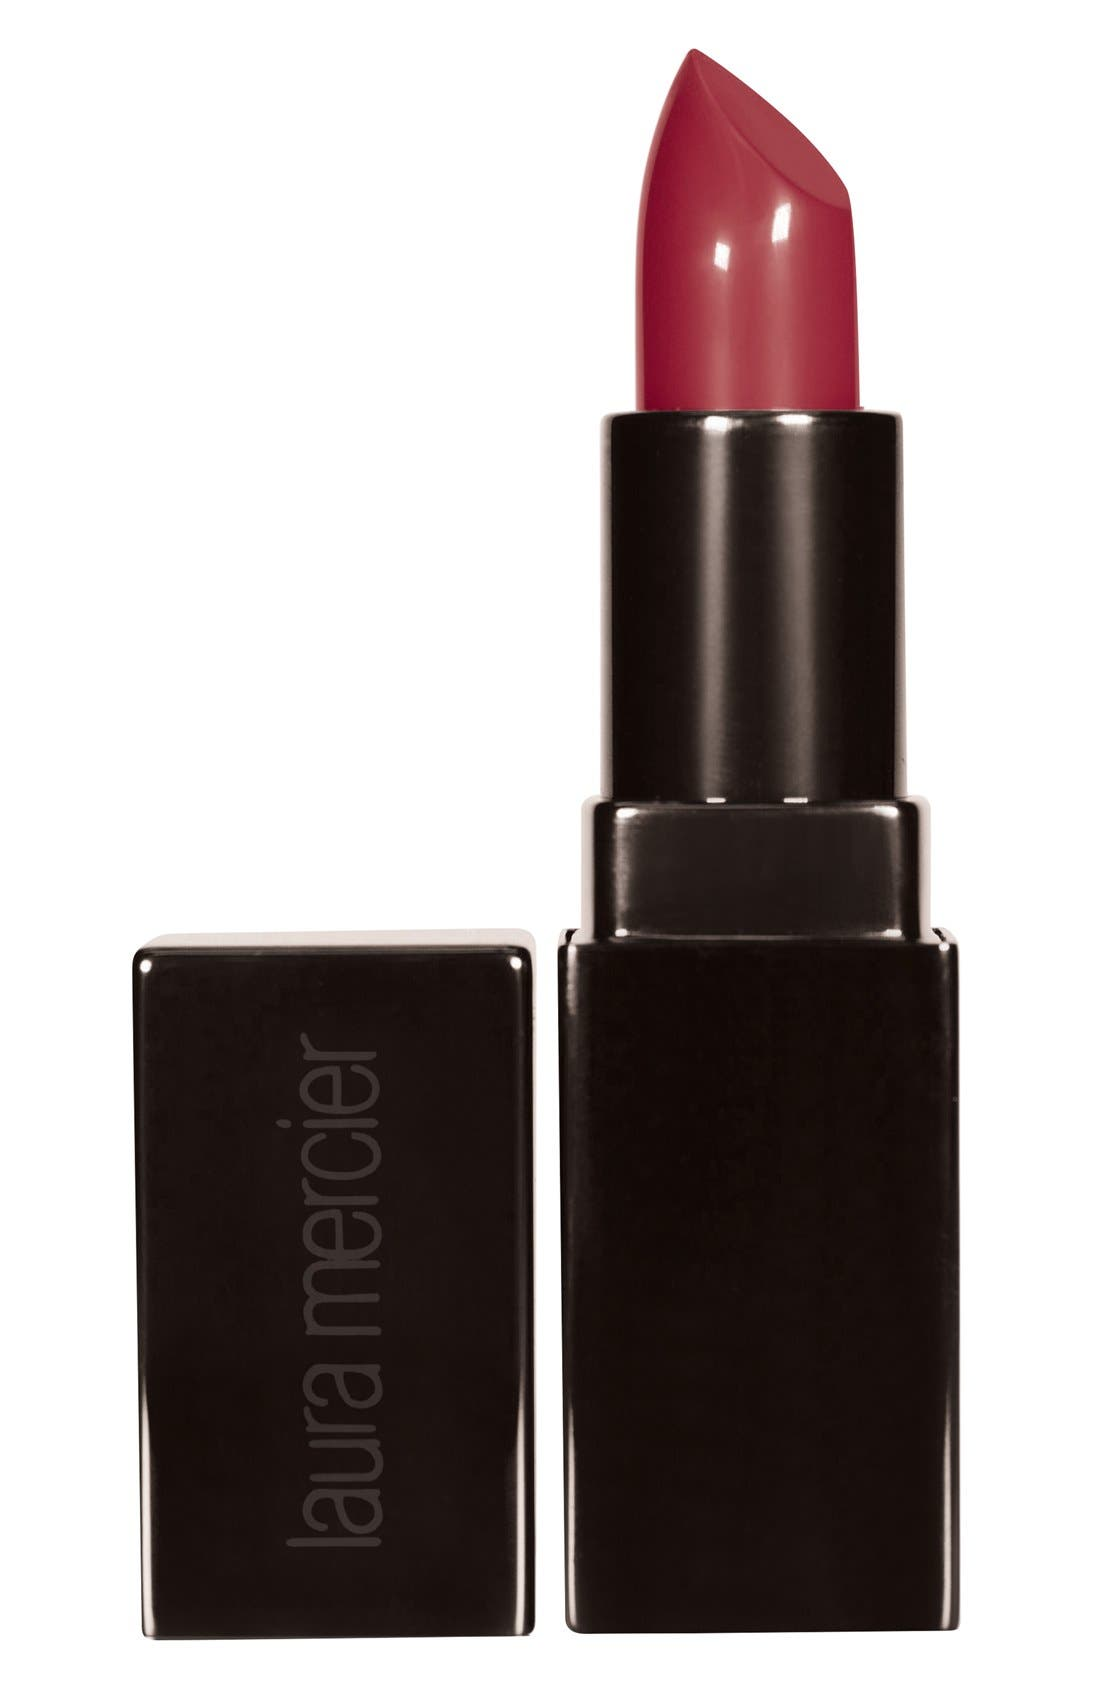 Laura Mercier Crème Smooth Lip Color